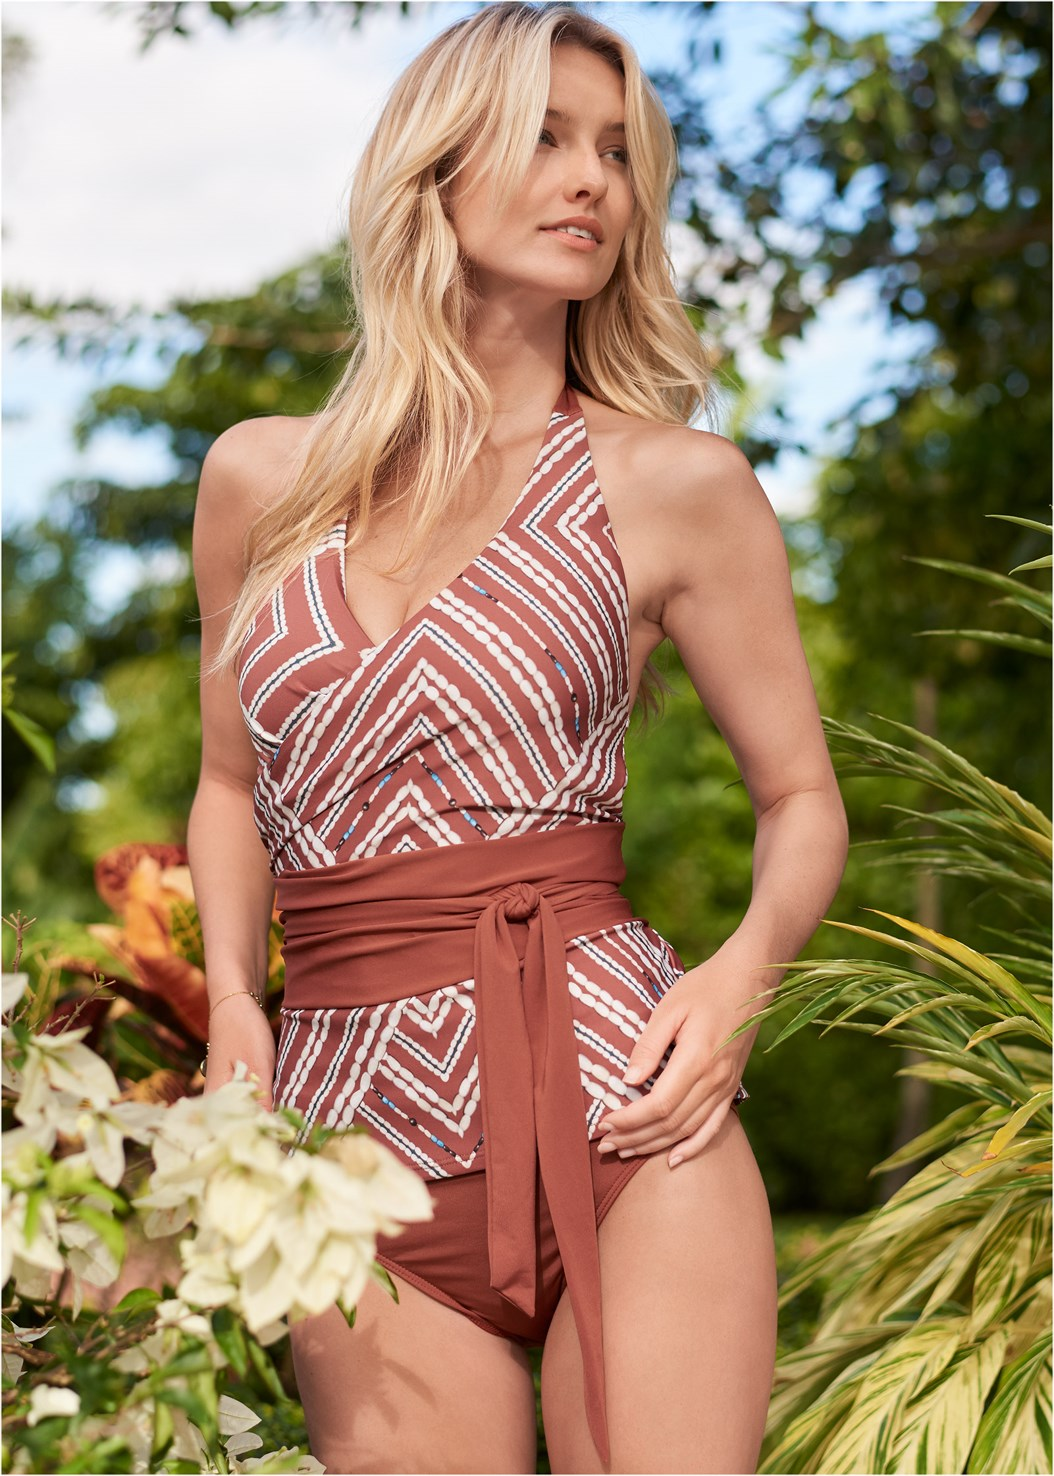 Sustainable Wrap Tankini Top,Sustainable Mid Rise Bottom,Sustainable High Waist Bottoms,High Waist Shirred Bottom,Swim Short,Crochet Detail Cover-Up,Shell Detail Sandals